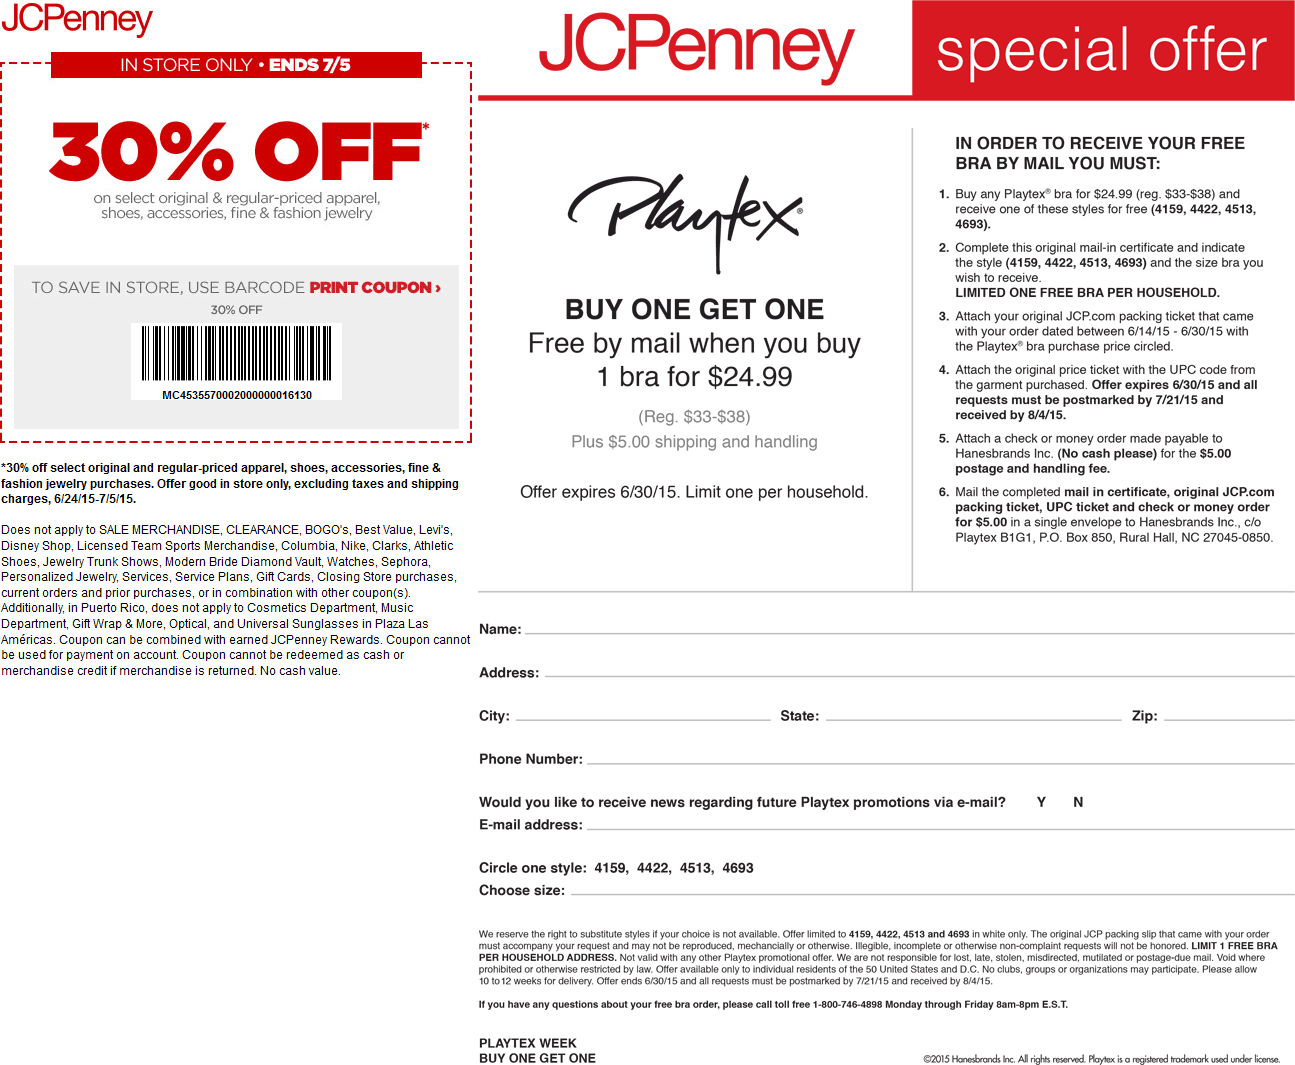 JCPenney Coupon May 2018 30% off at JCPenney - also second bra $5 by mail